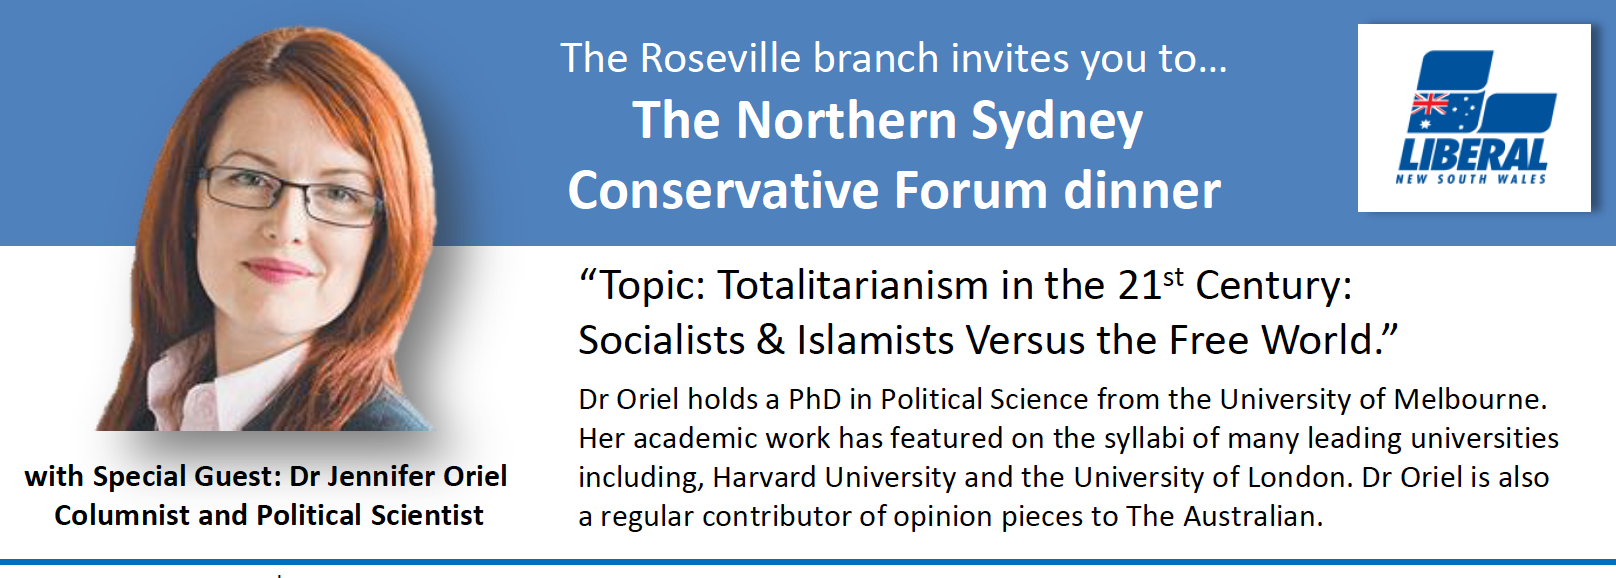 northernsydneyconservativeforumjenniferorieldinner